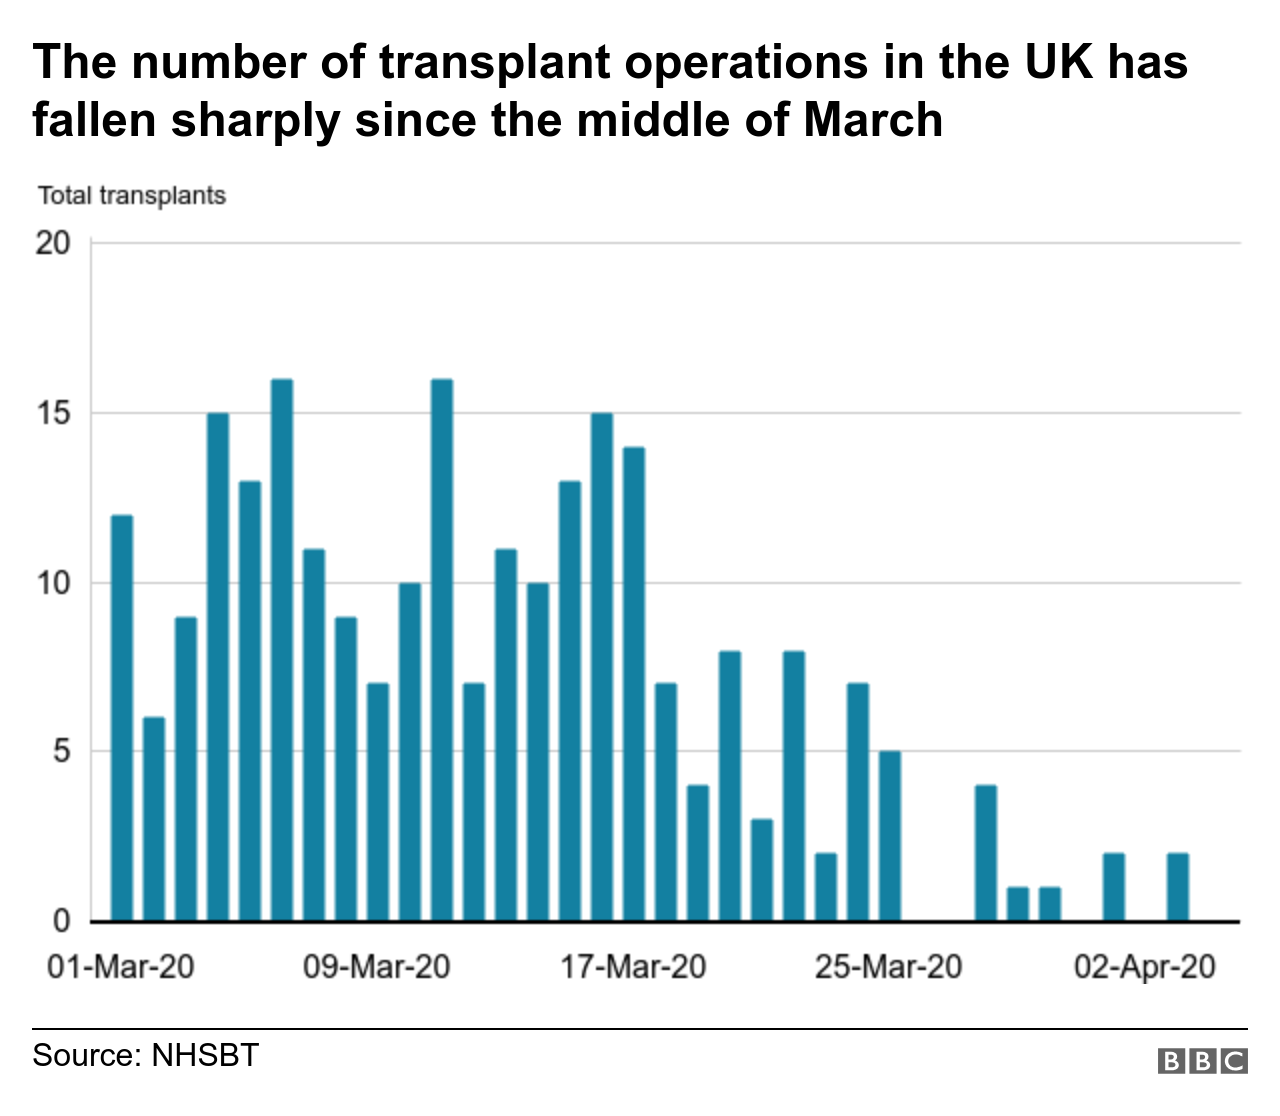 Graph showing transplant operations in the UK have fallen sharply since mid-March